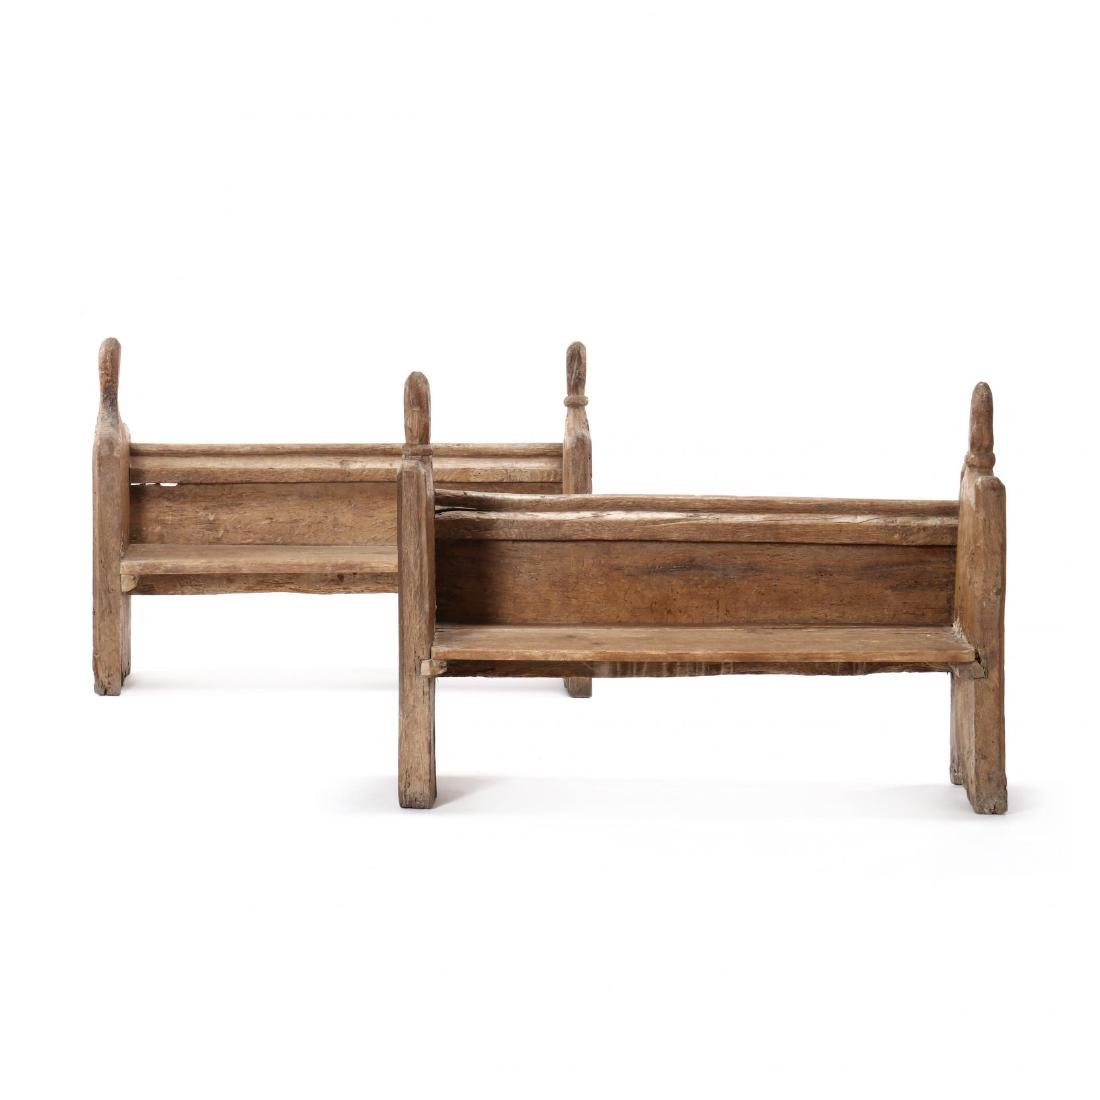 Two Continental 18th Century Pew Benches